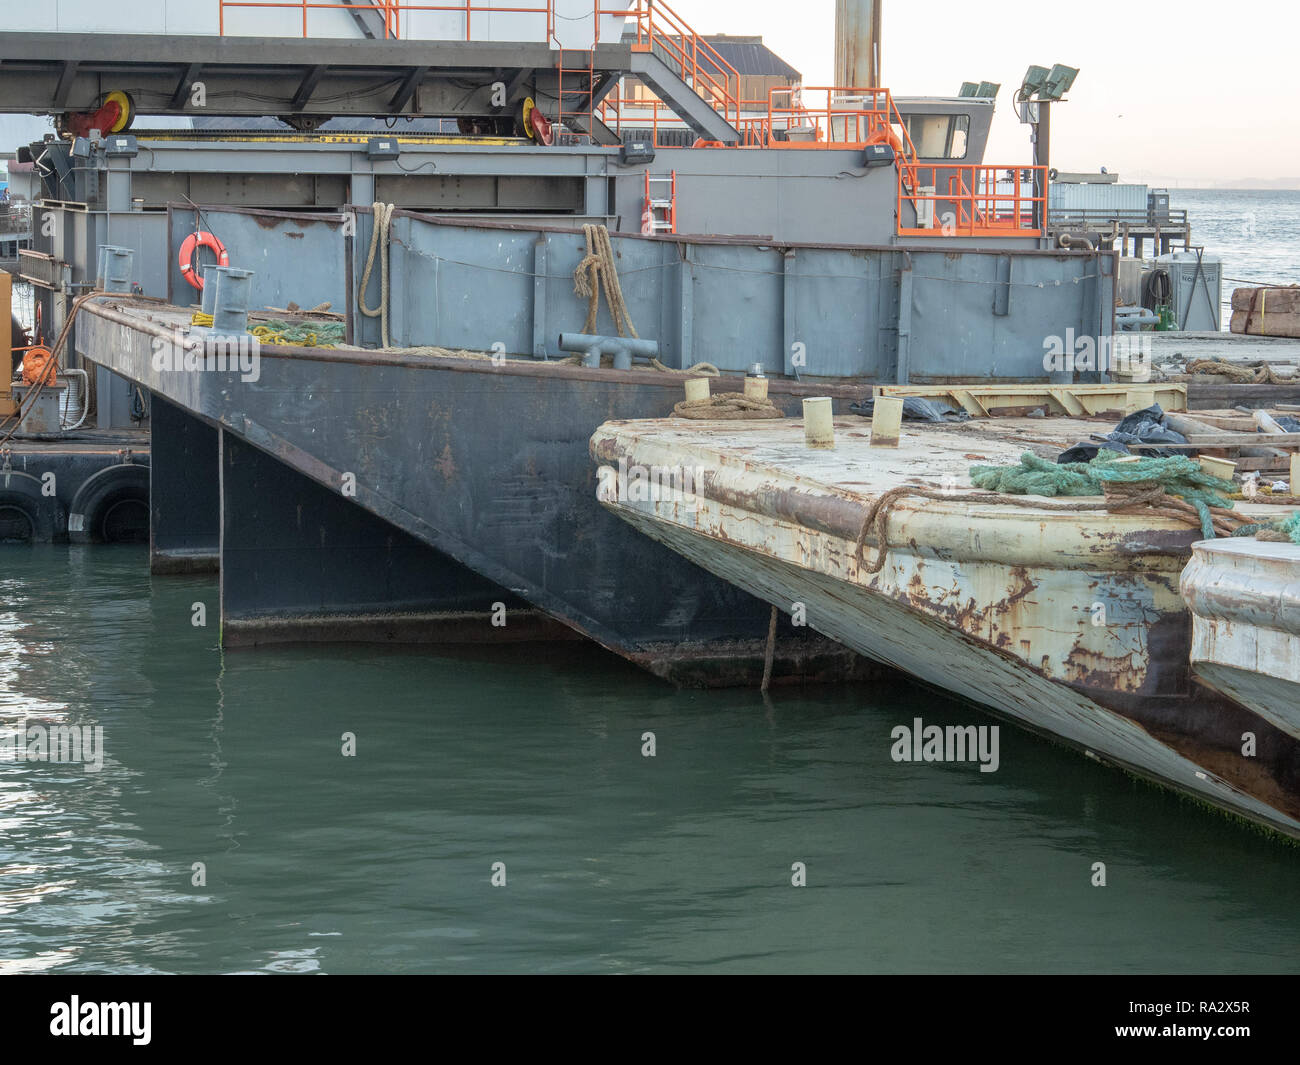 Rusty cargo ships and boats among equipment sitting at industrial dock - Stock Image